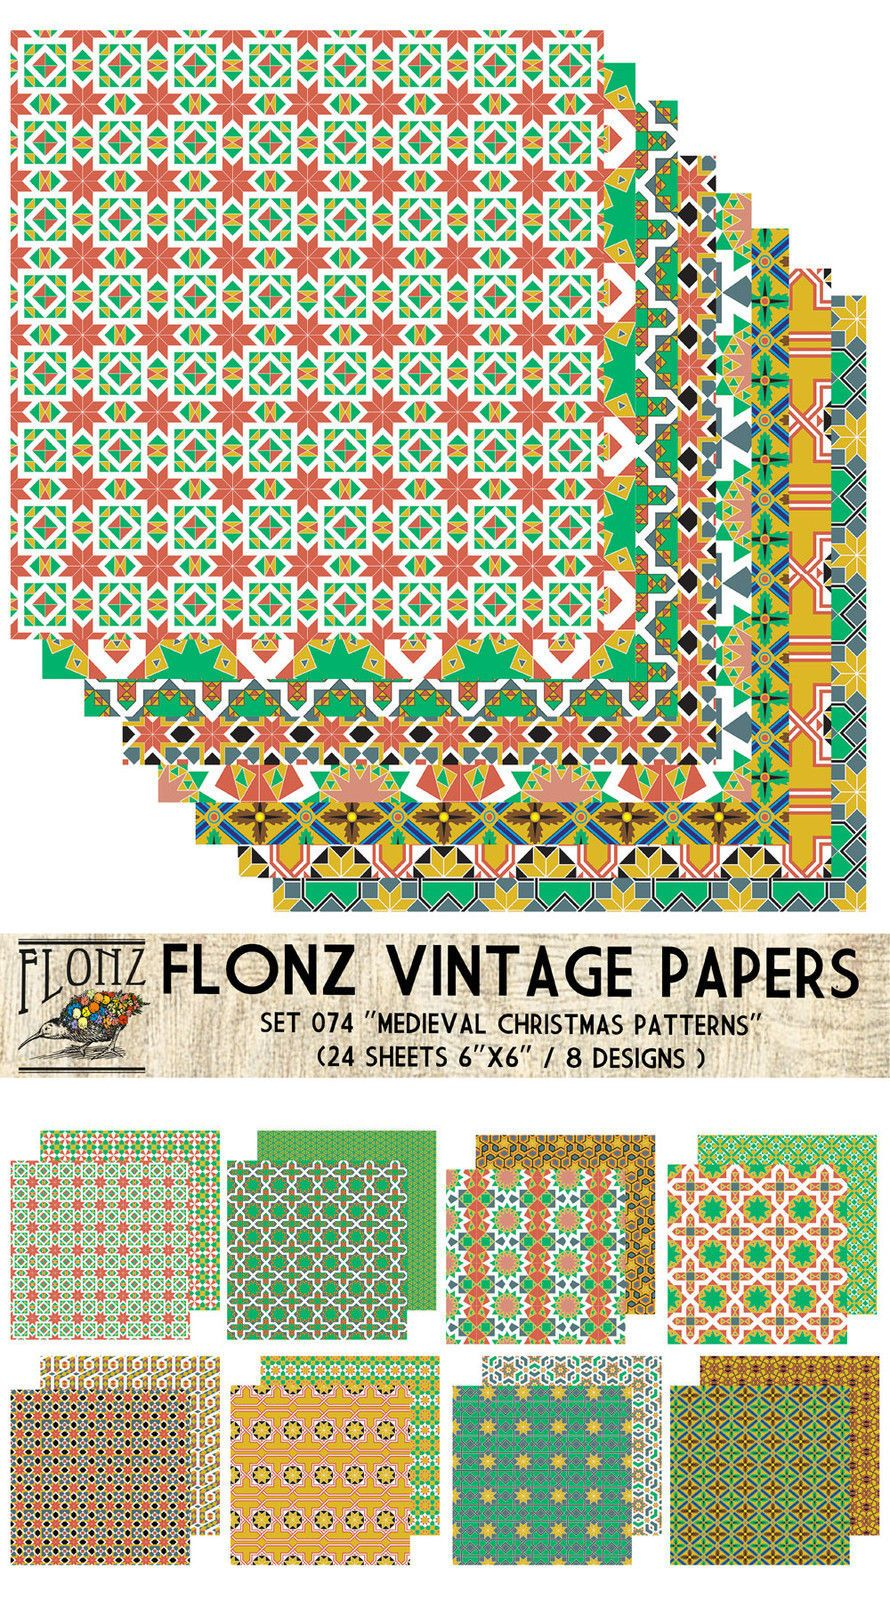 Retro Christmas FLONZ Vintage Paper for Scrapbooking and Craft Paper Pack 24sh 15x15cm